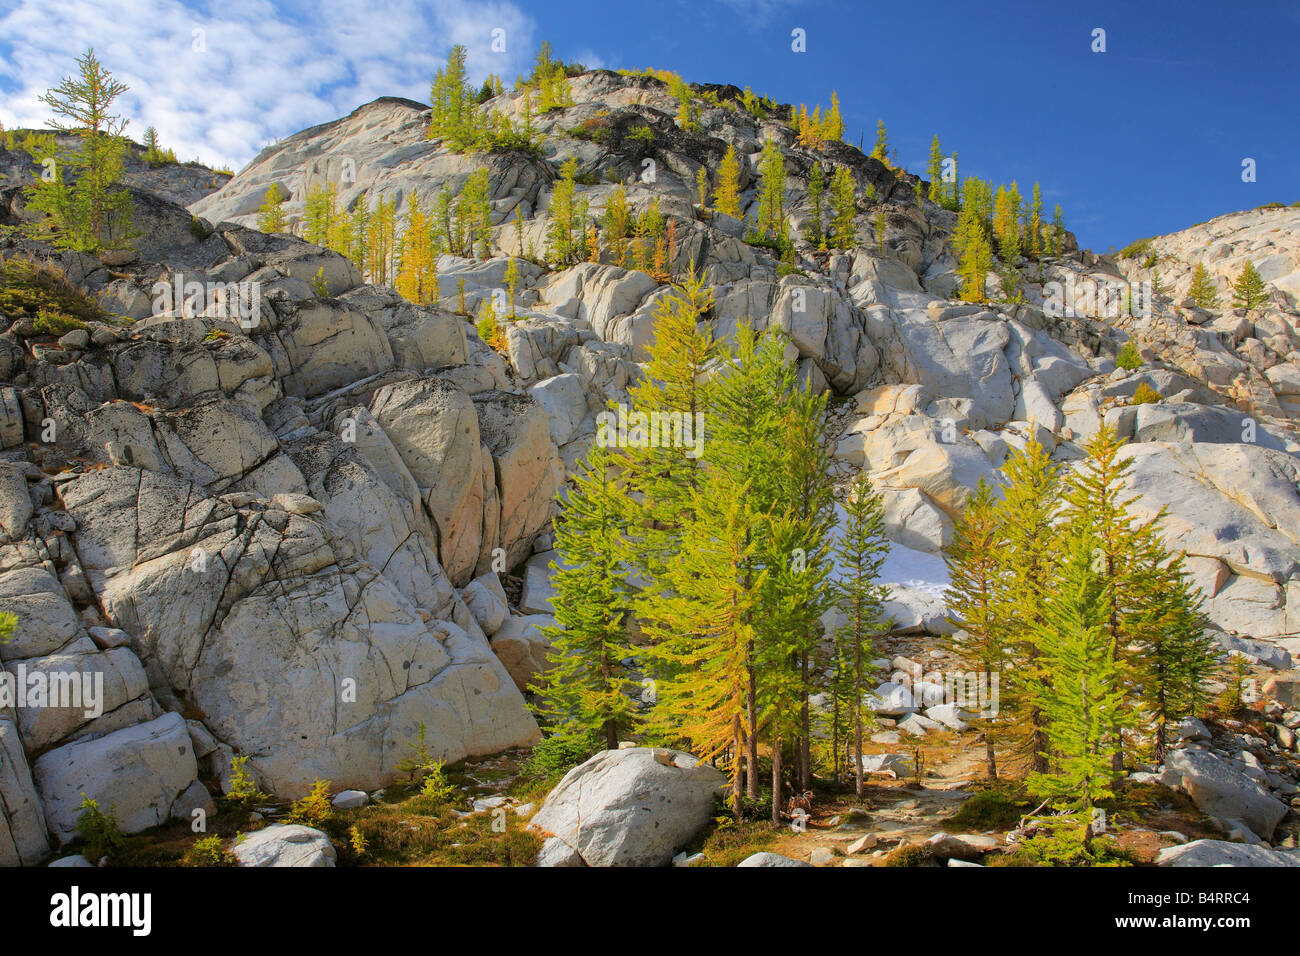 Larches at Inspiration Lake in the Enchantment Lakes area of the Alpine Lakes Wilderness, Washington Stock Photo